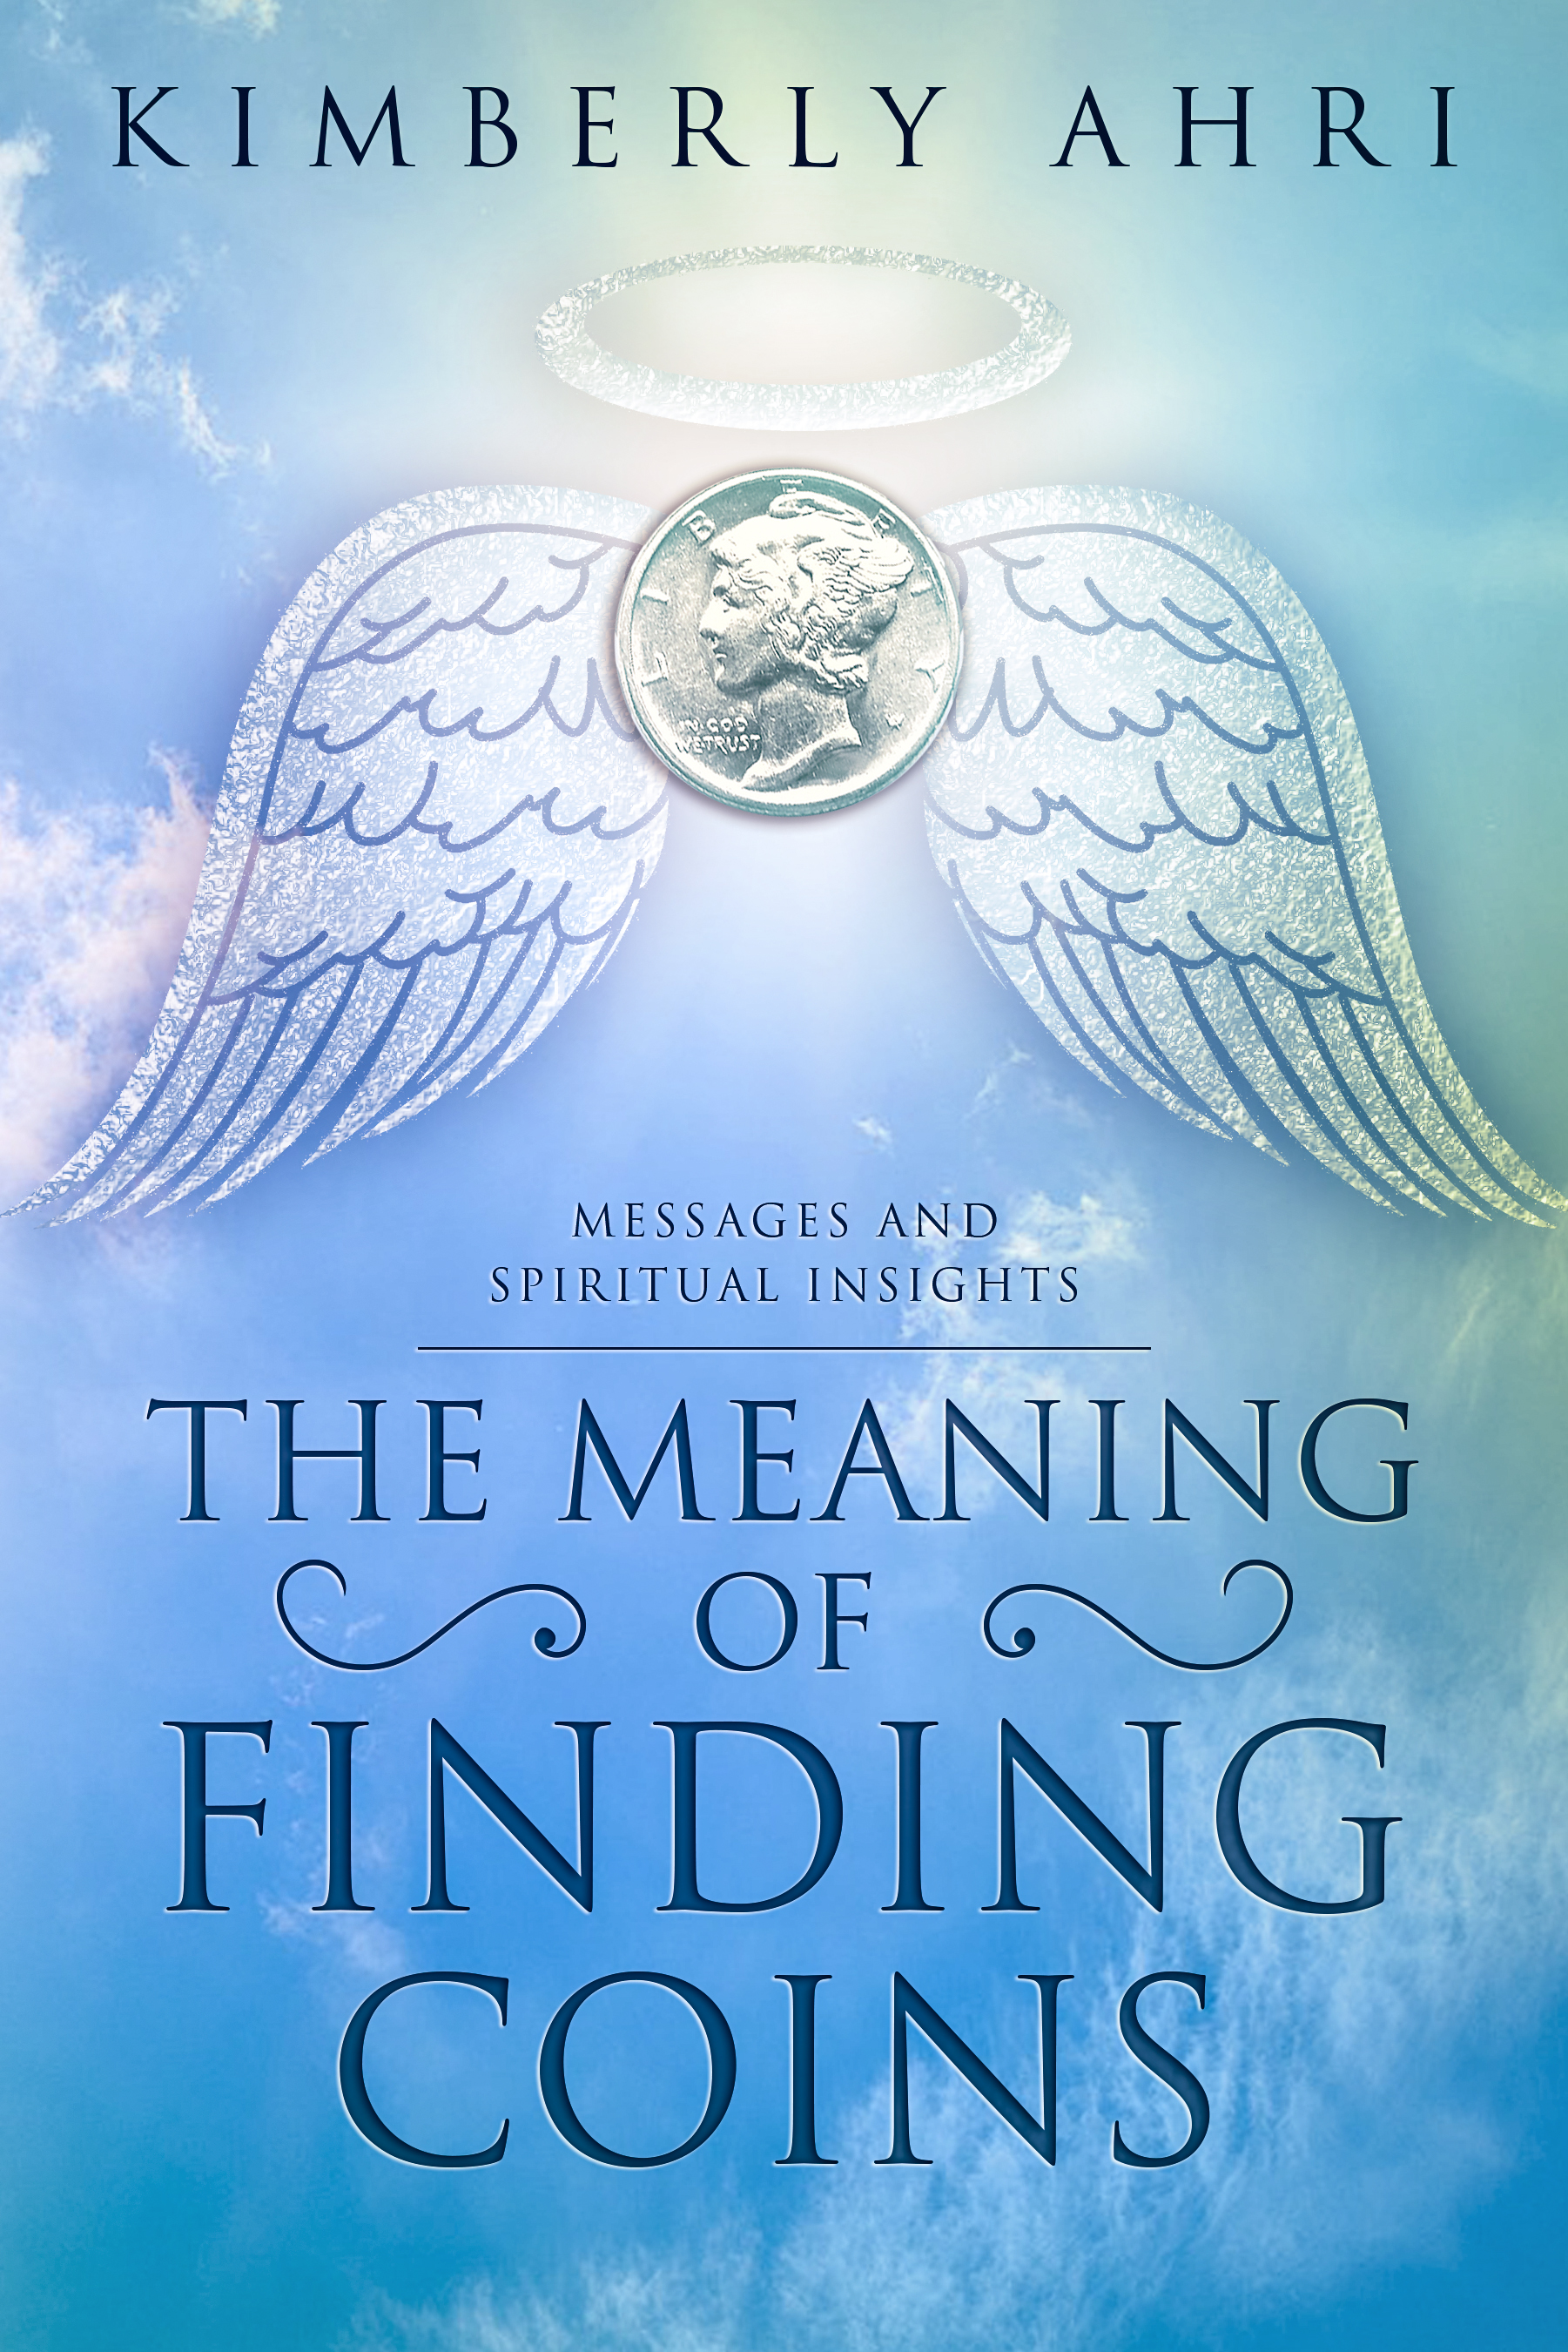 The Meaning of Finding Coins: Messages & Spiritual Insights